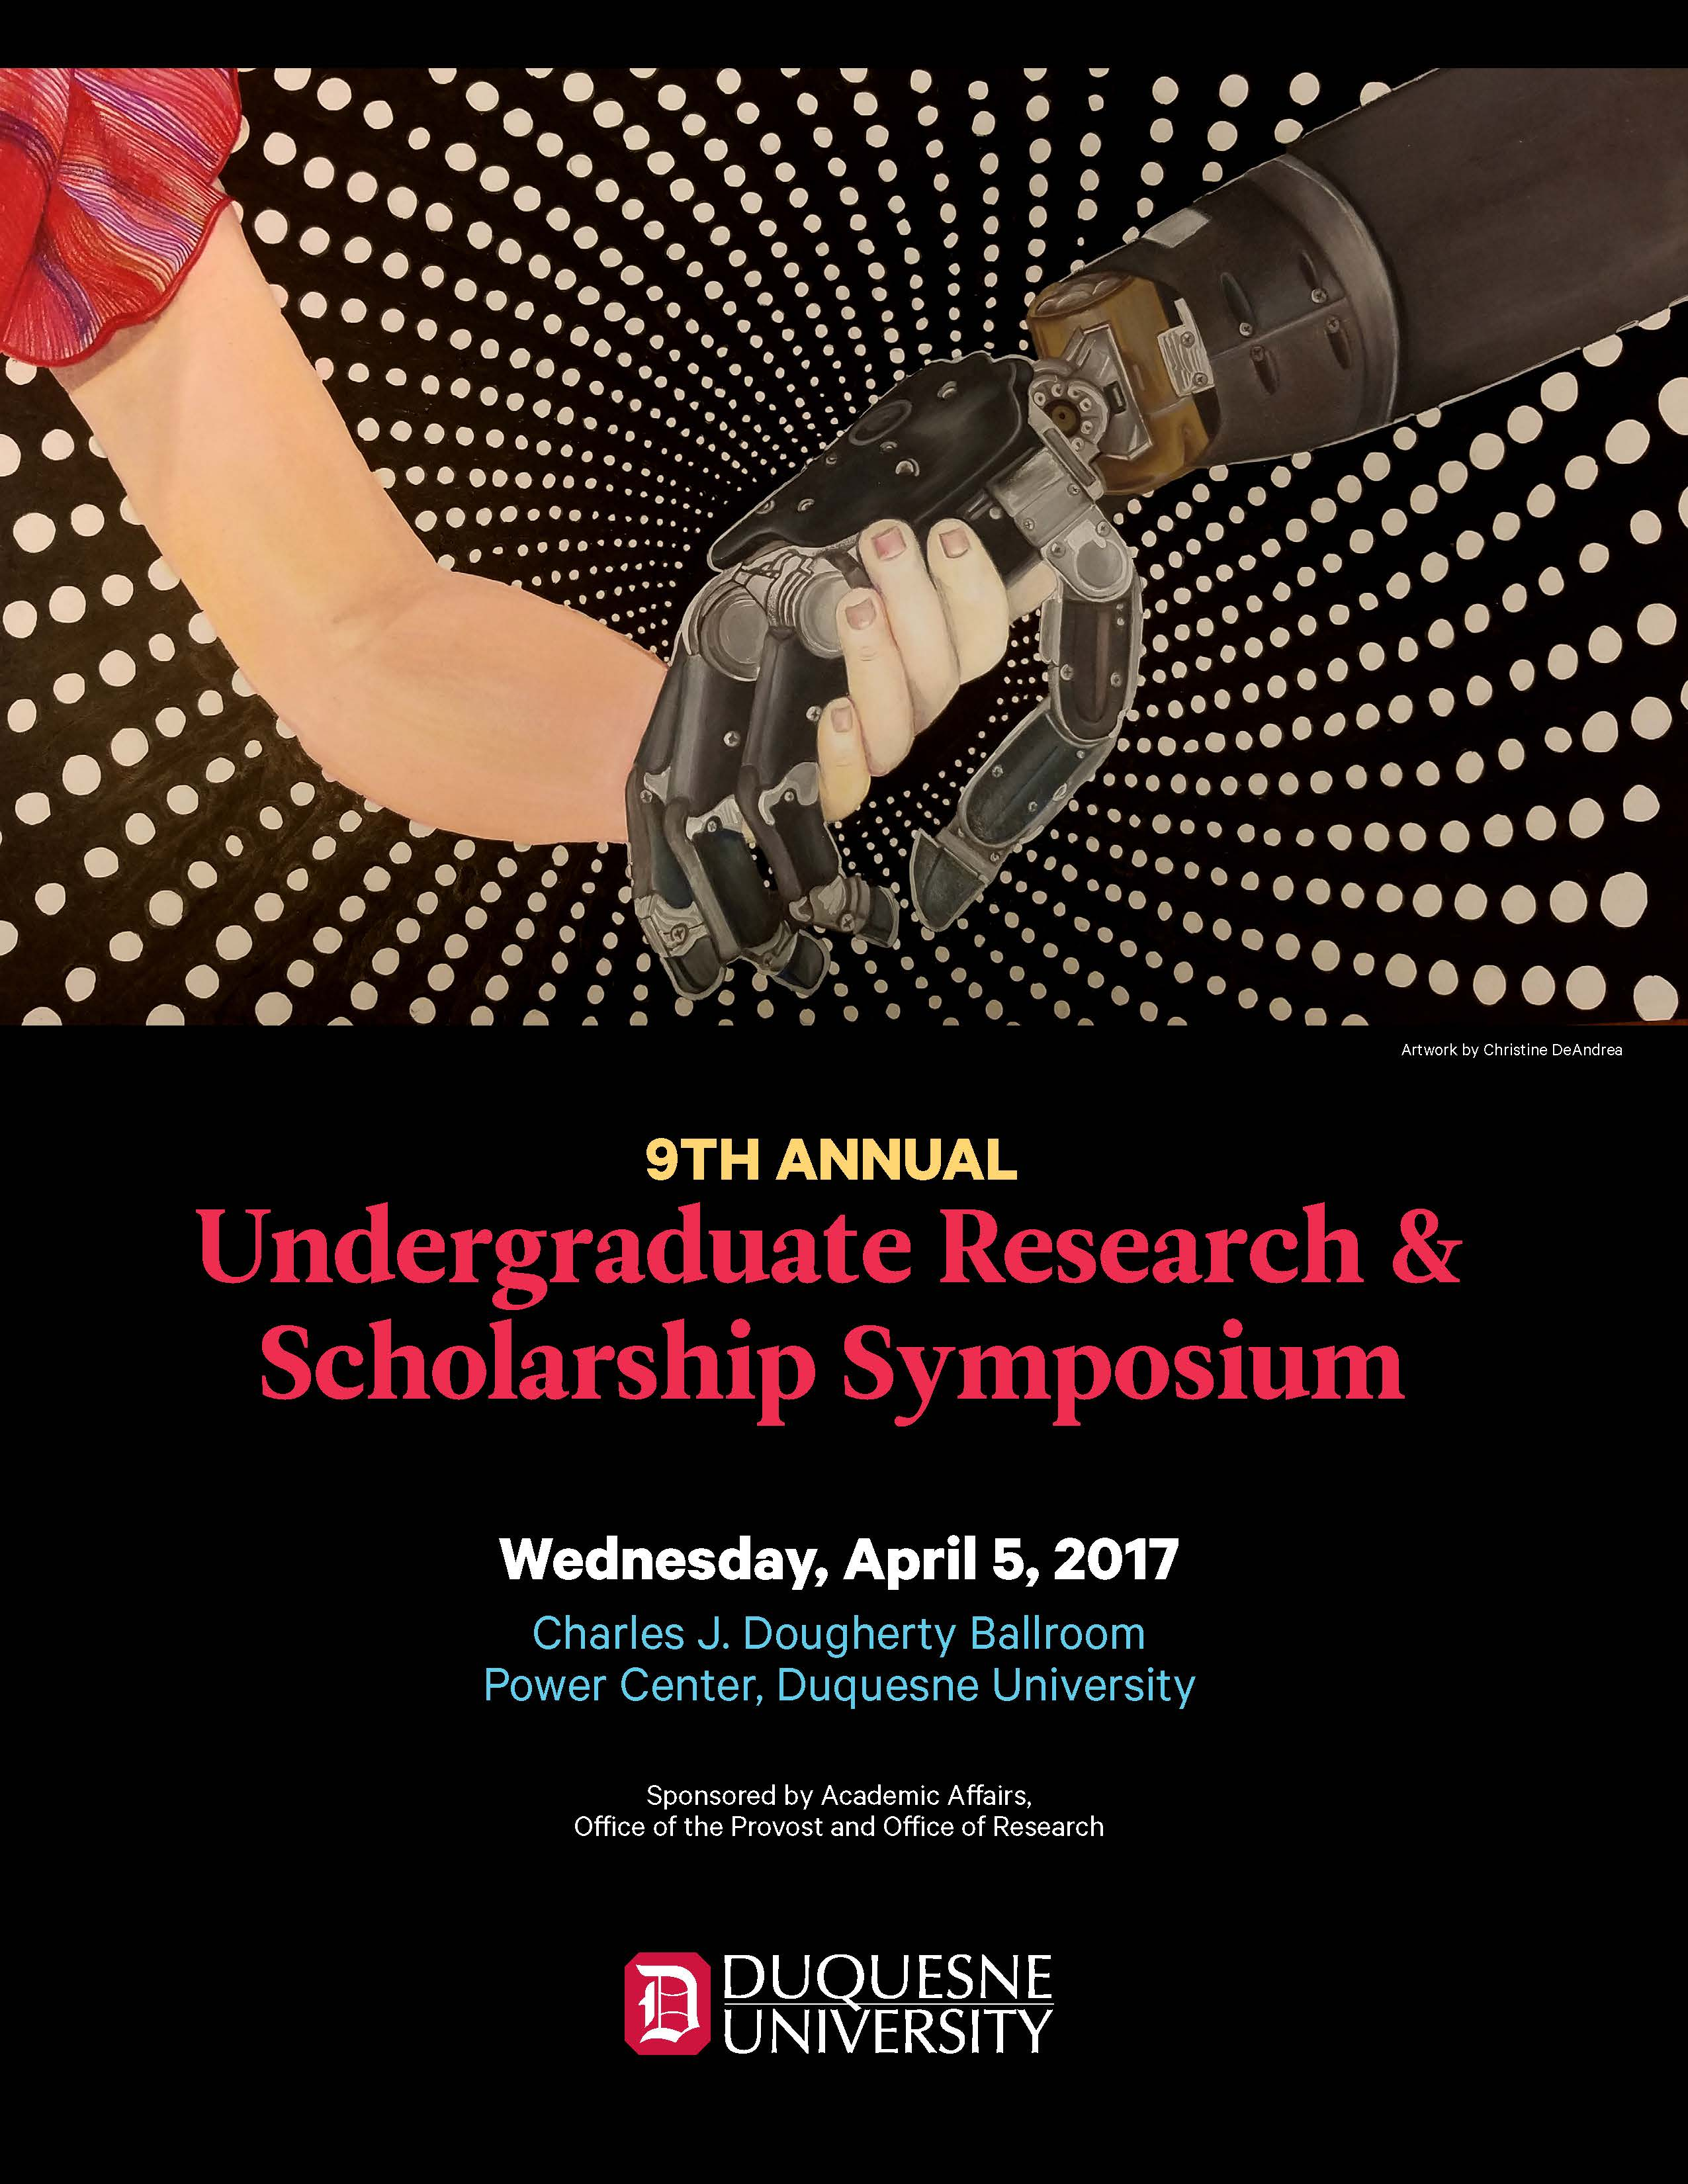 9th Annual Undergraduate Research & Scholarship Symposium